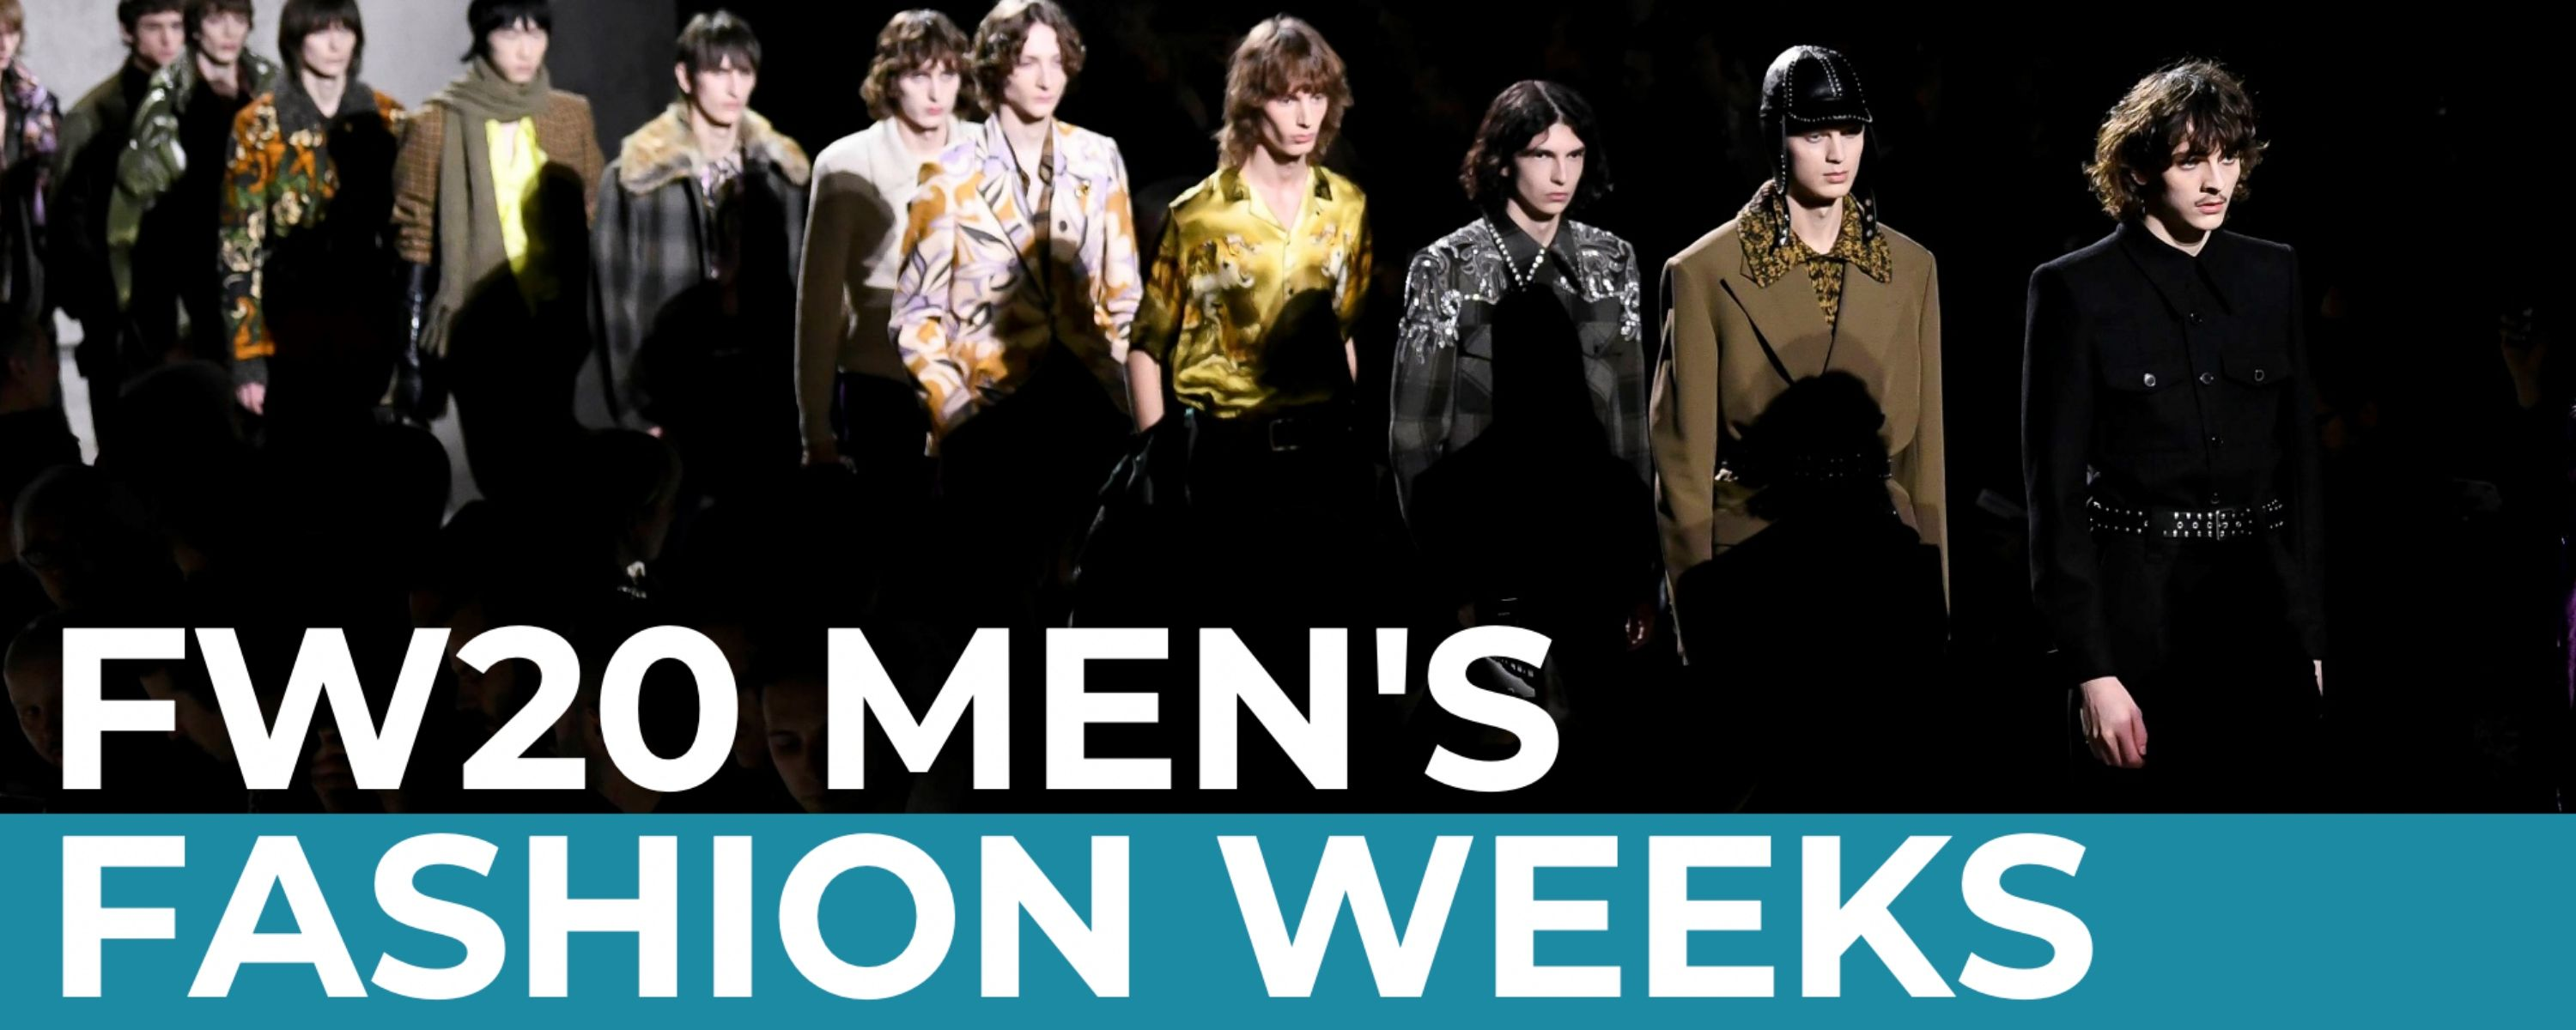 FW20 Men's Fashion Weeks